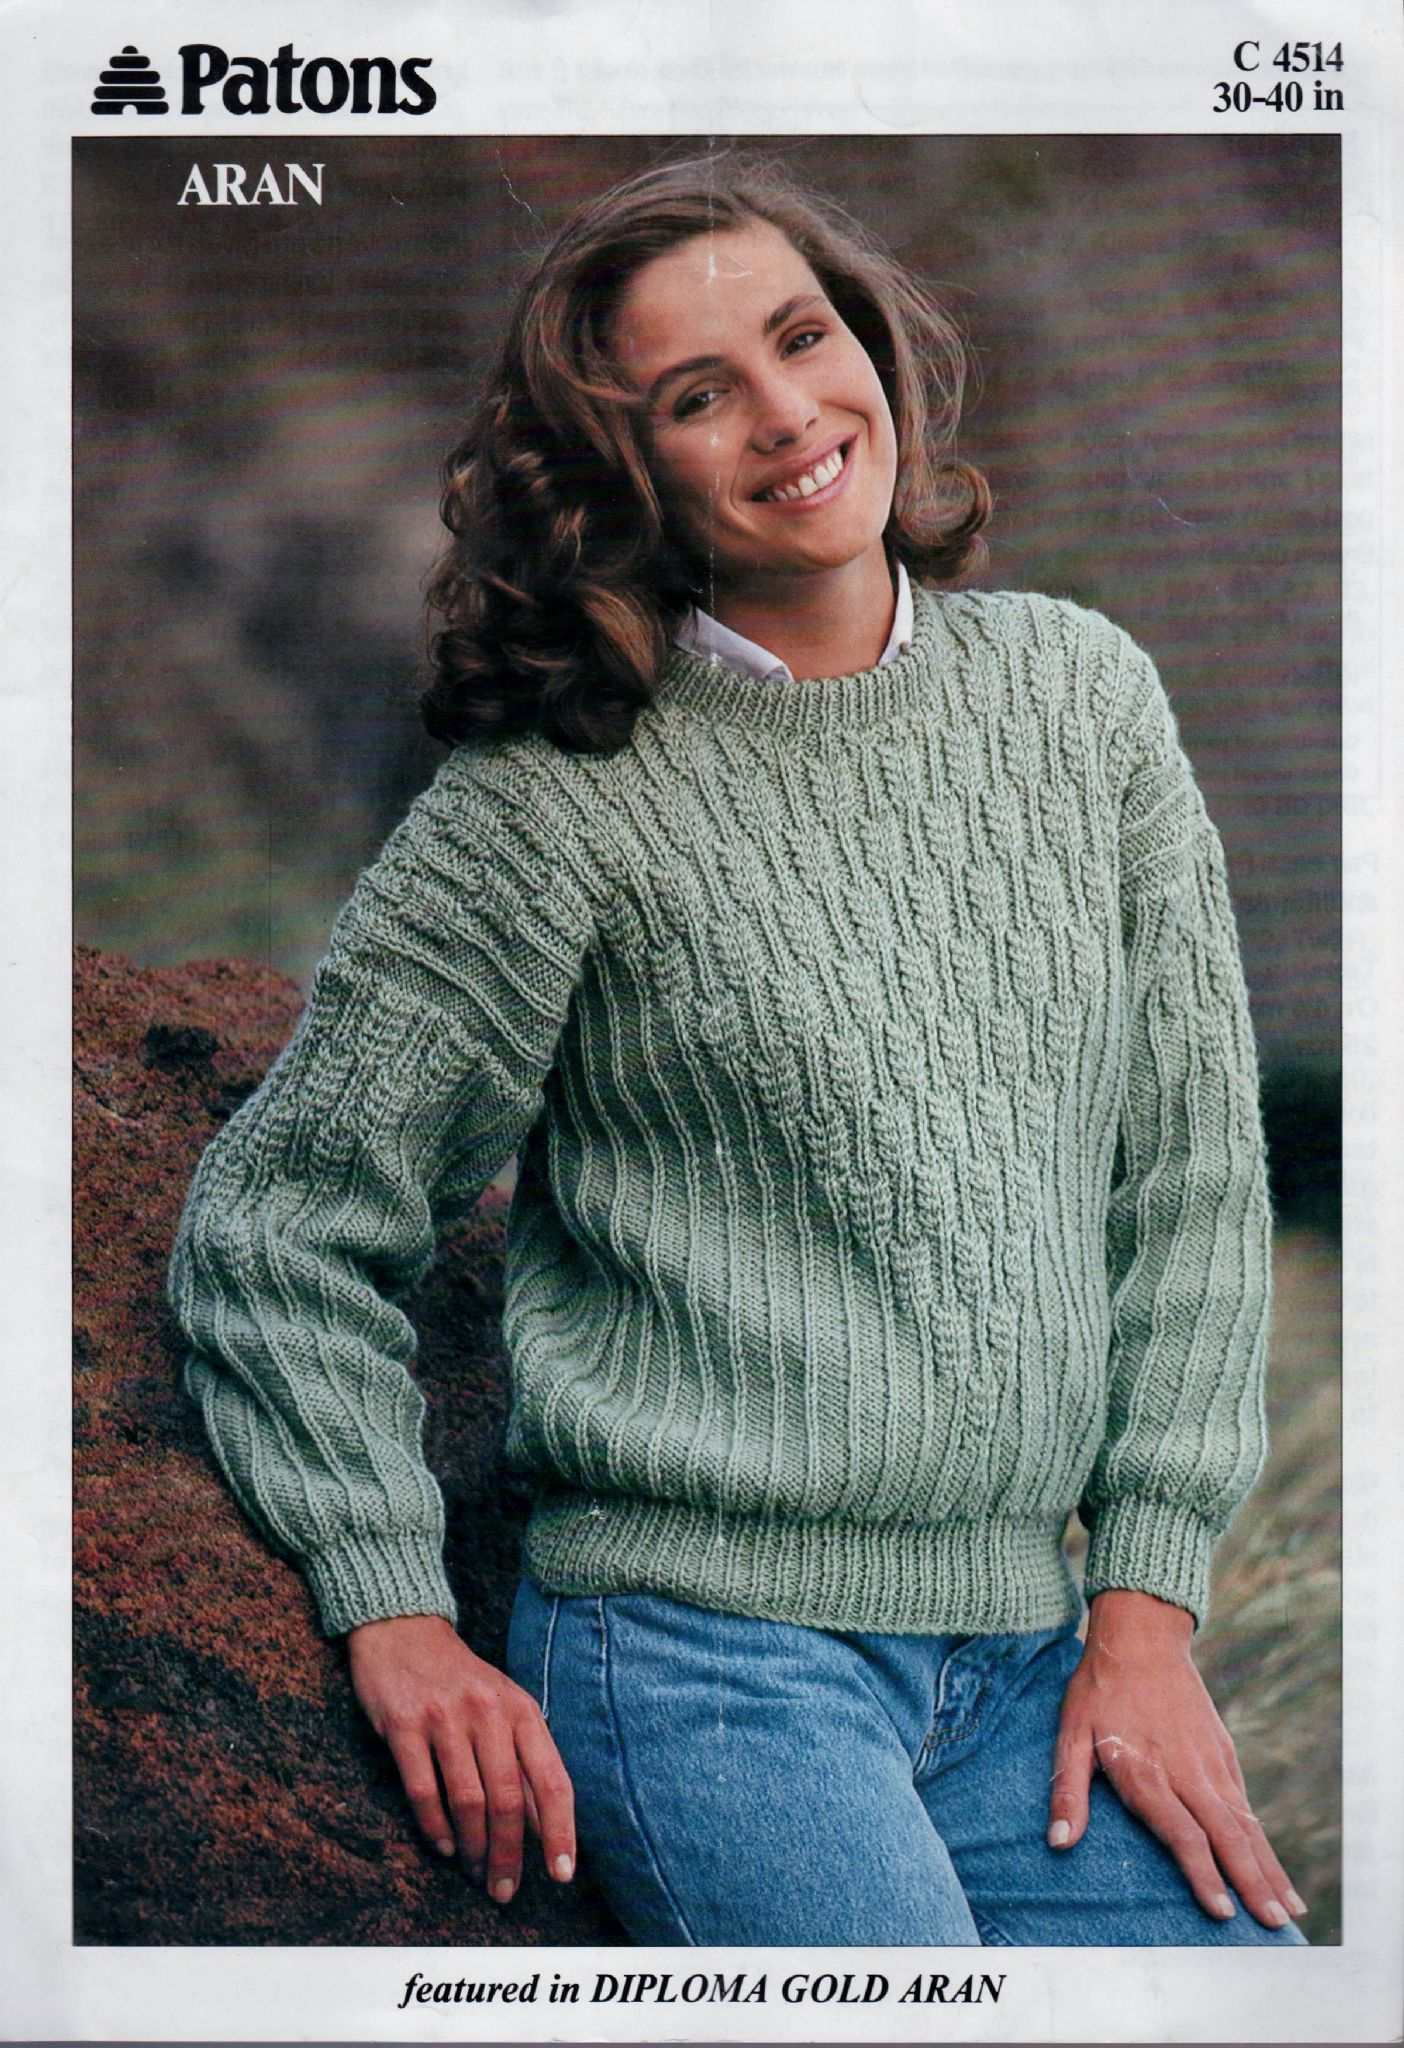 Aran Jumper Knitting Patterns Instant Pdf Digital Download Vintage Knitting Pattern Patons C4515 Ladies Aran Sweater Jumper 30 40